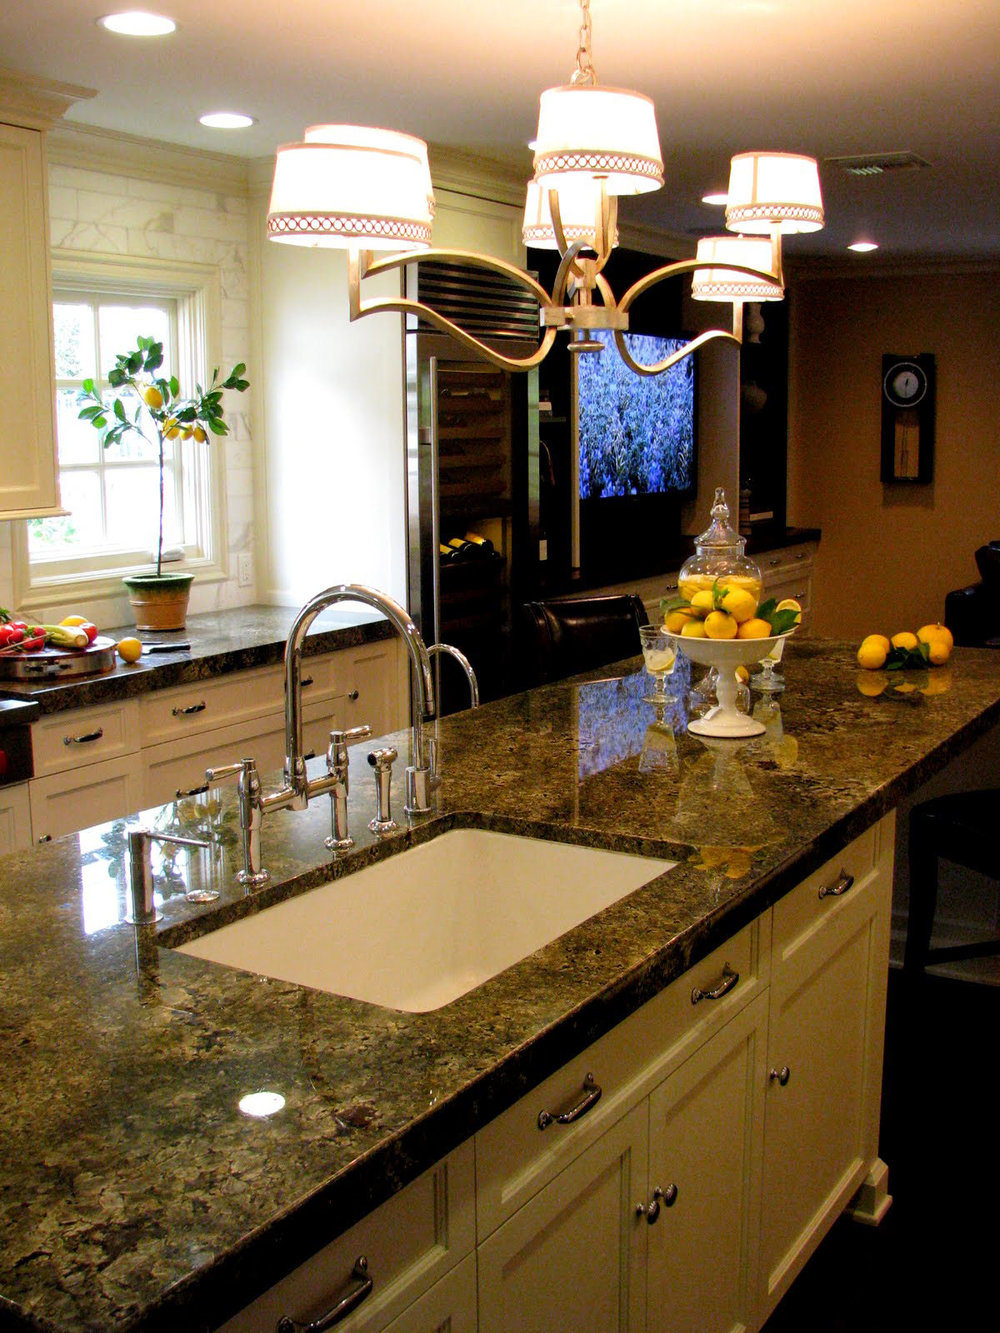 beverlywood-california-kitchen-remodel-interior-design-montgomery-home.jpg